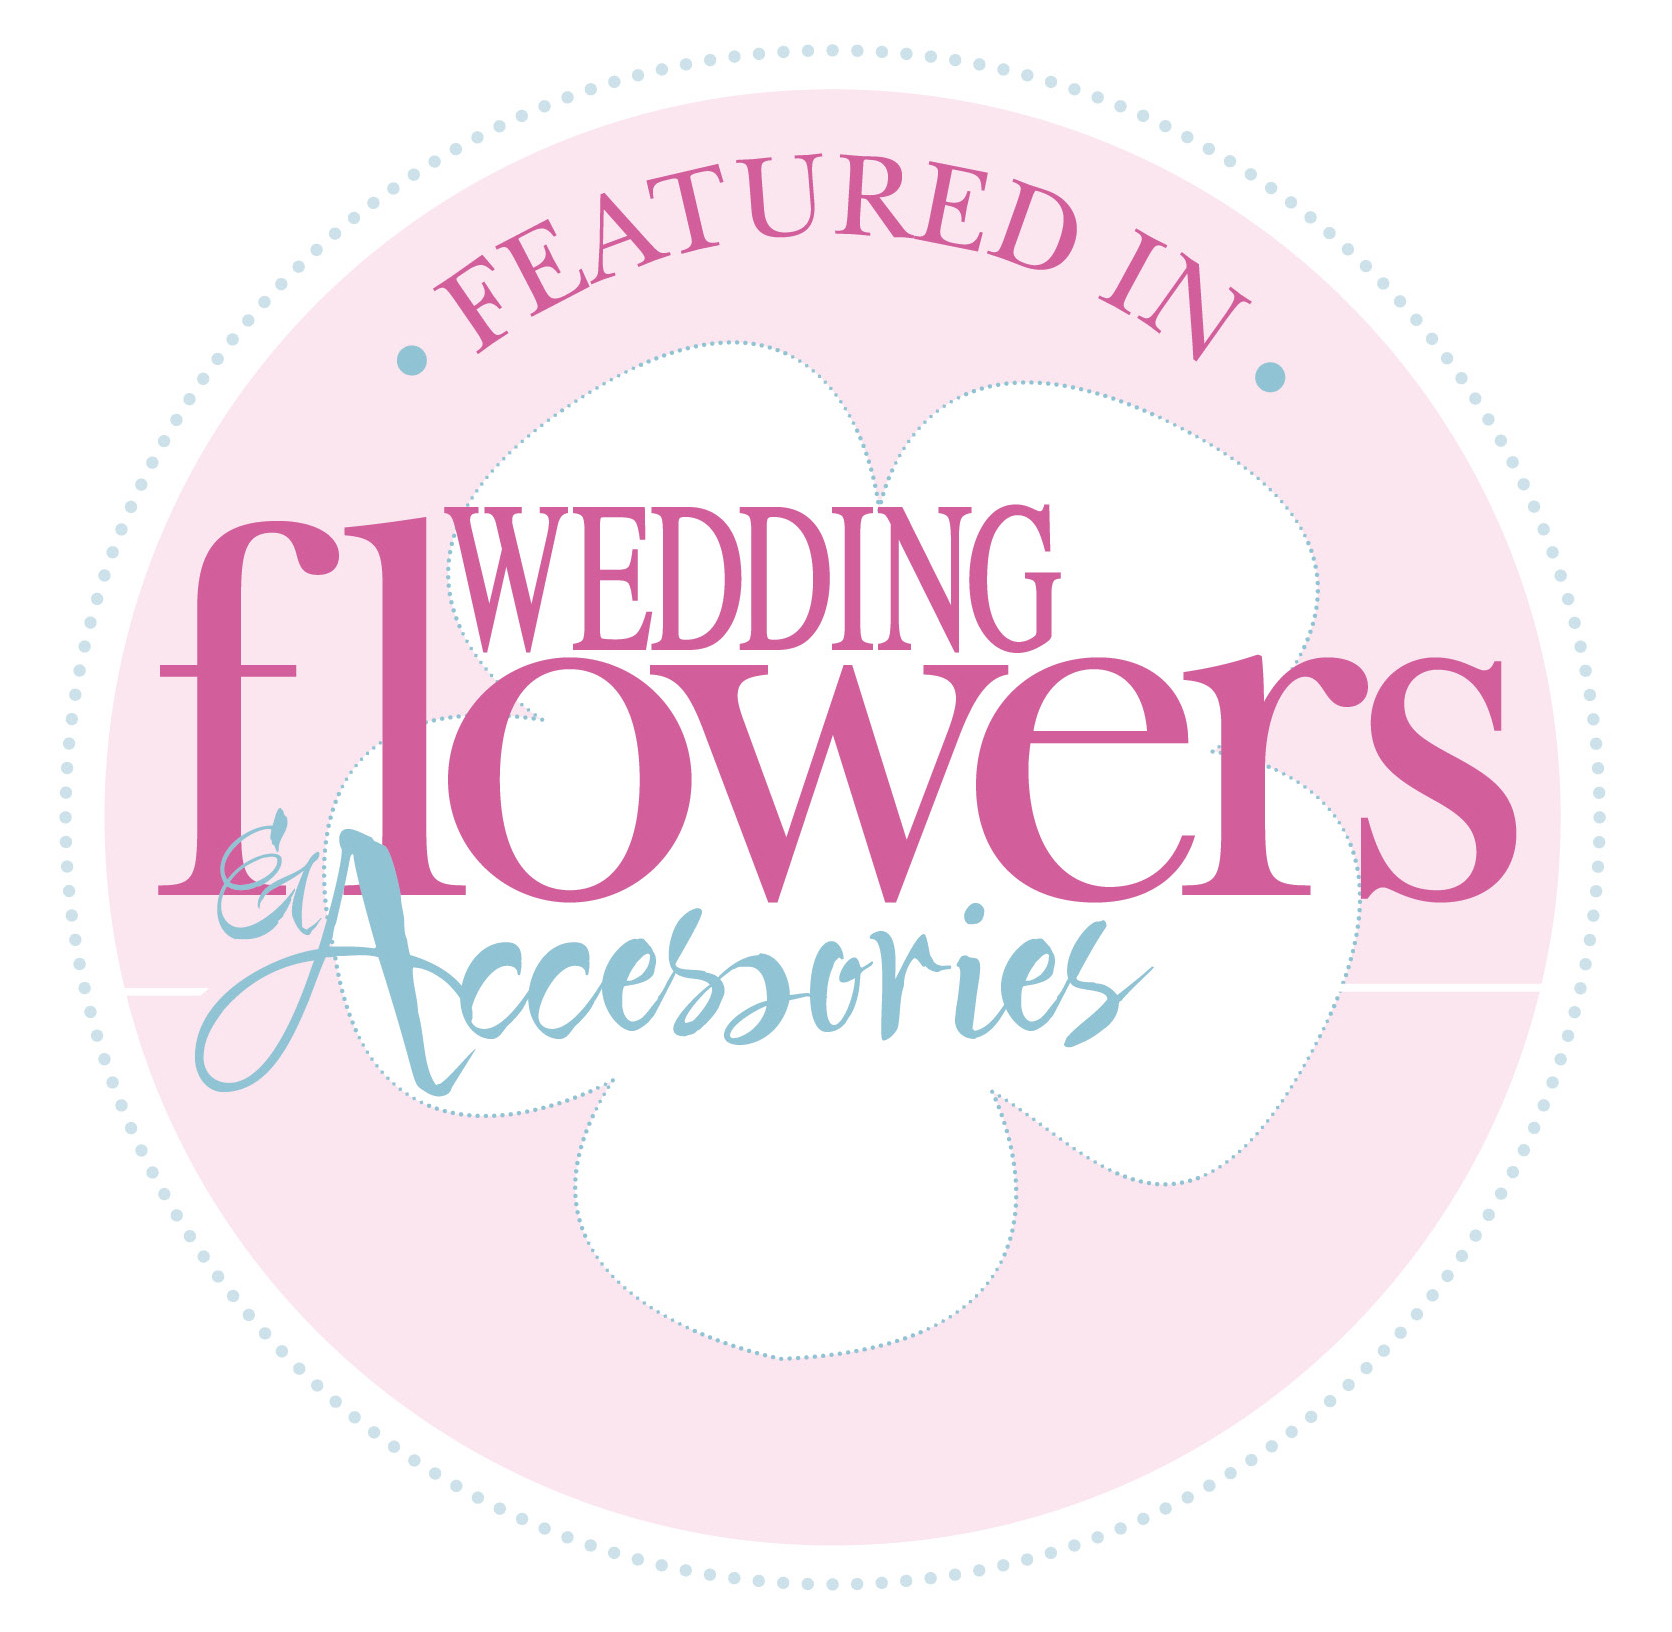 Featured in Wedding Flowers Magazine Badge